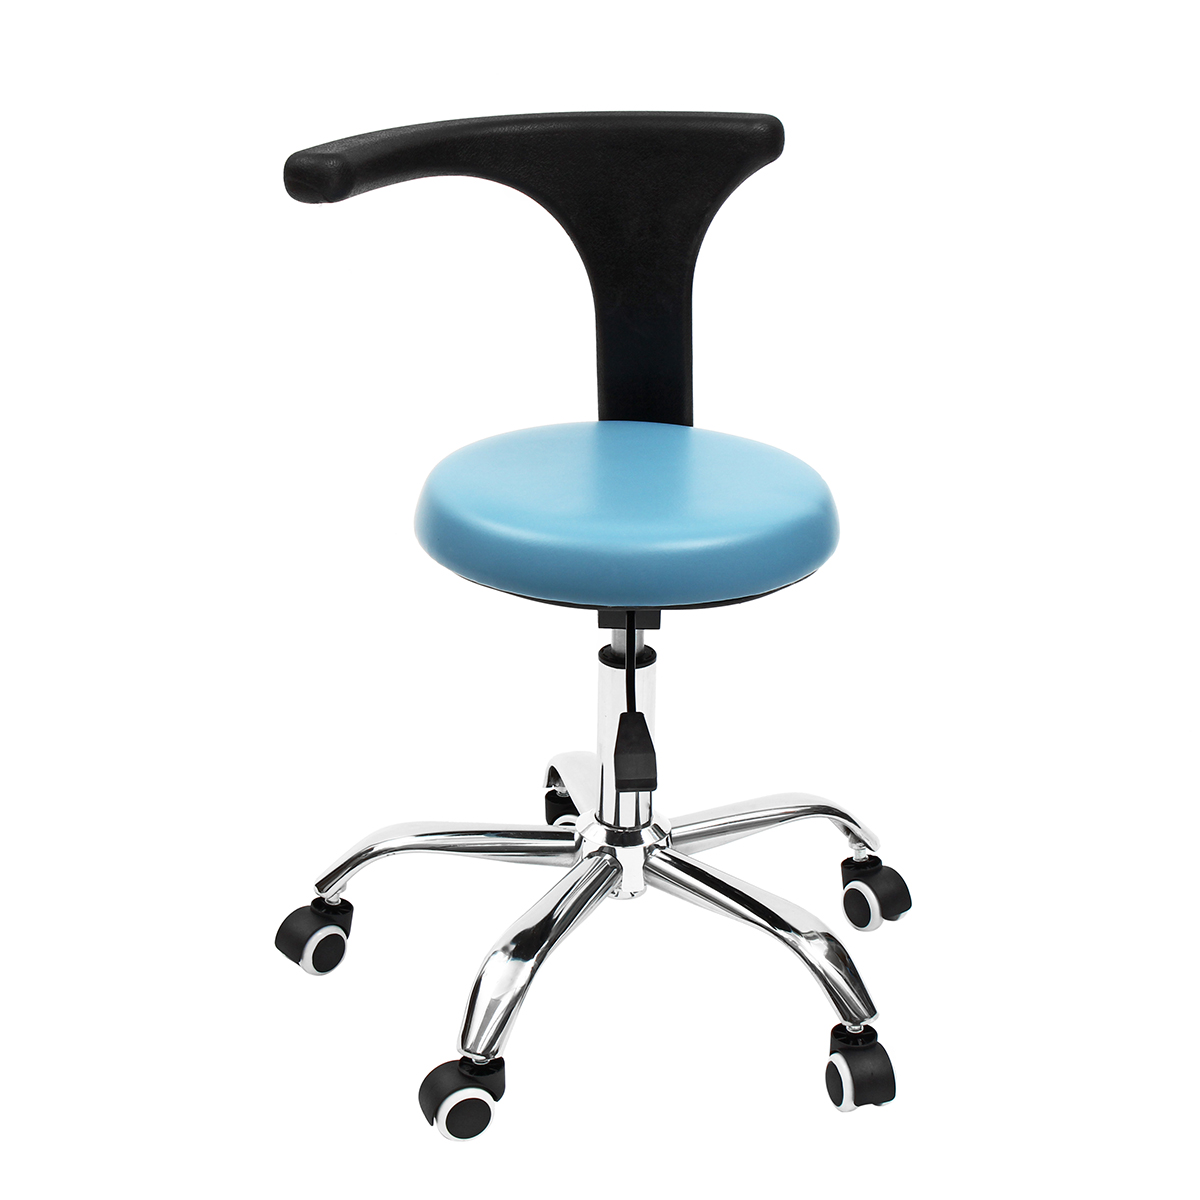 Salon Möbel Lfy Moderne Designe Barber Swivel Leder Executive Computer Büro Dekoration Gaming Salon Stuhl Schönheit Synthetische Metall